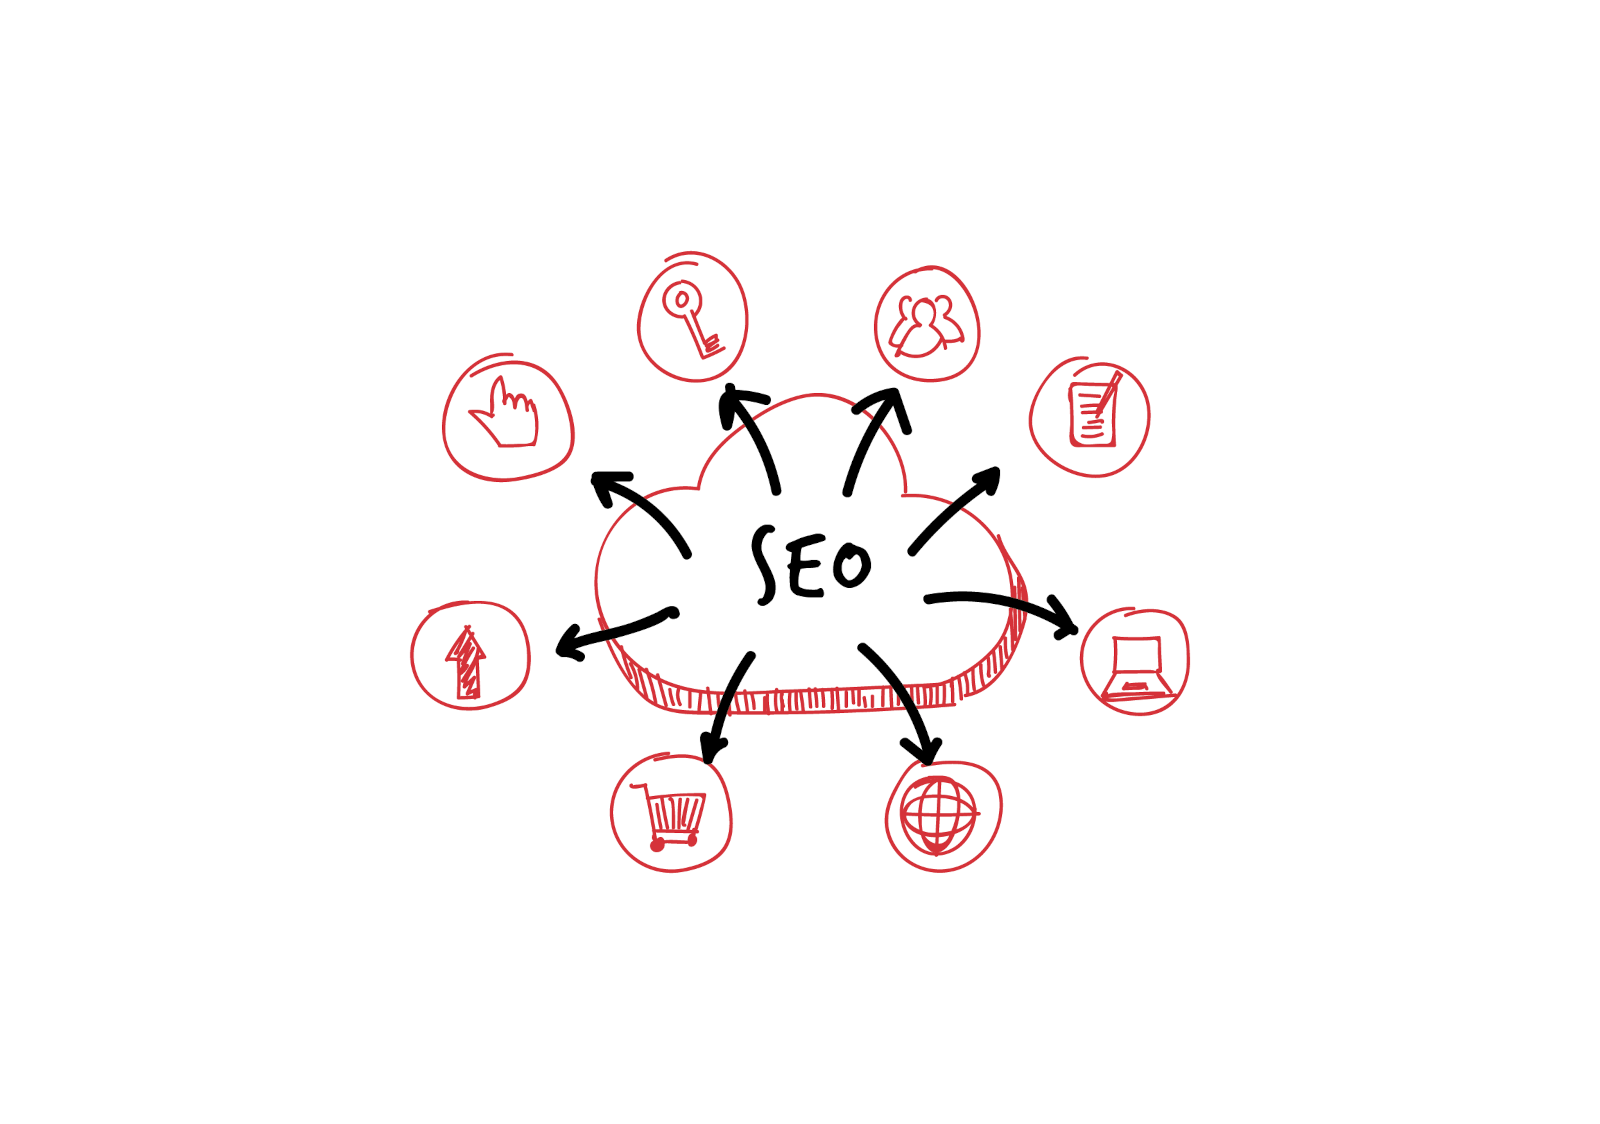 An approximate illustration of the SEO process